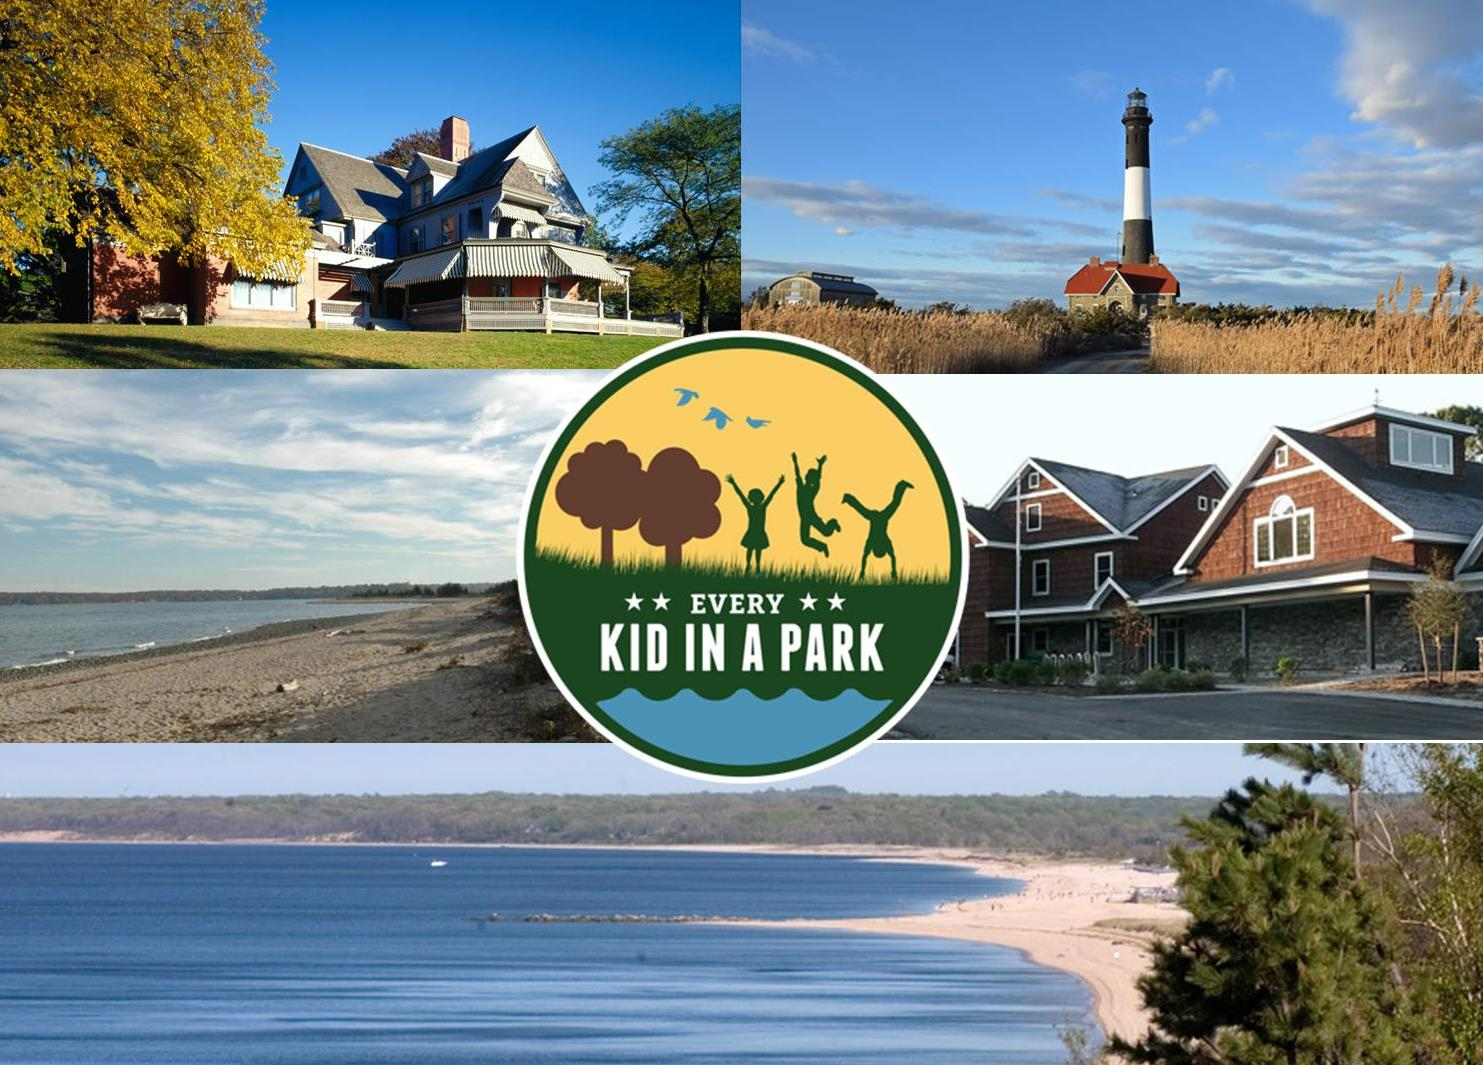 Long Island's Public Lands including Sagamore Hill, Fire Island, and Jones Beach.